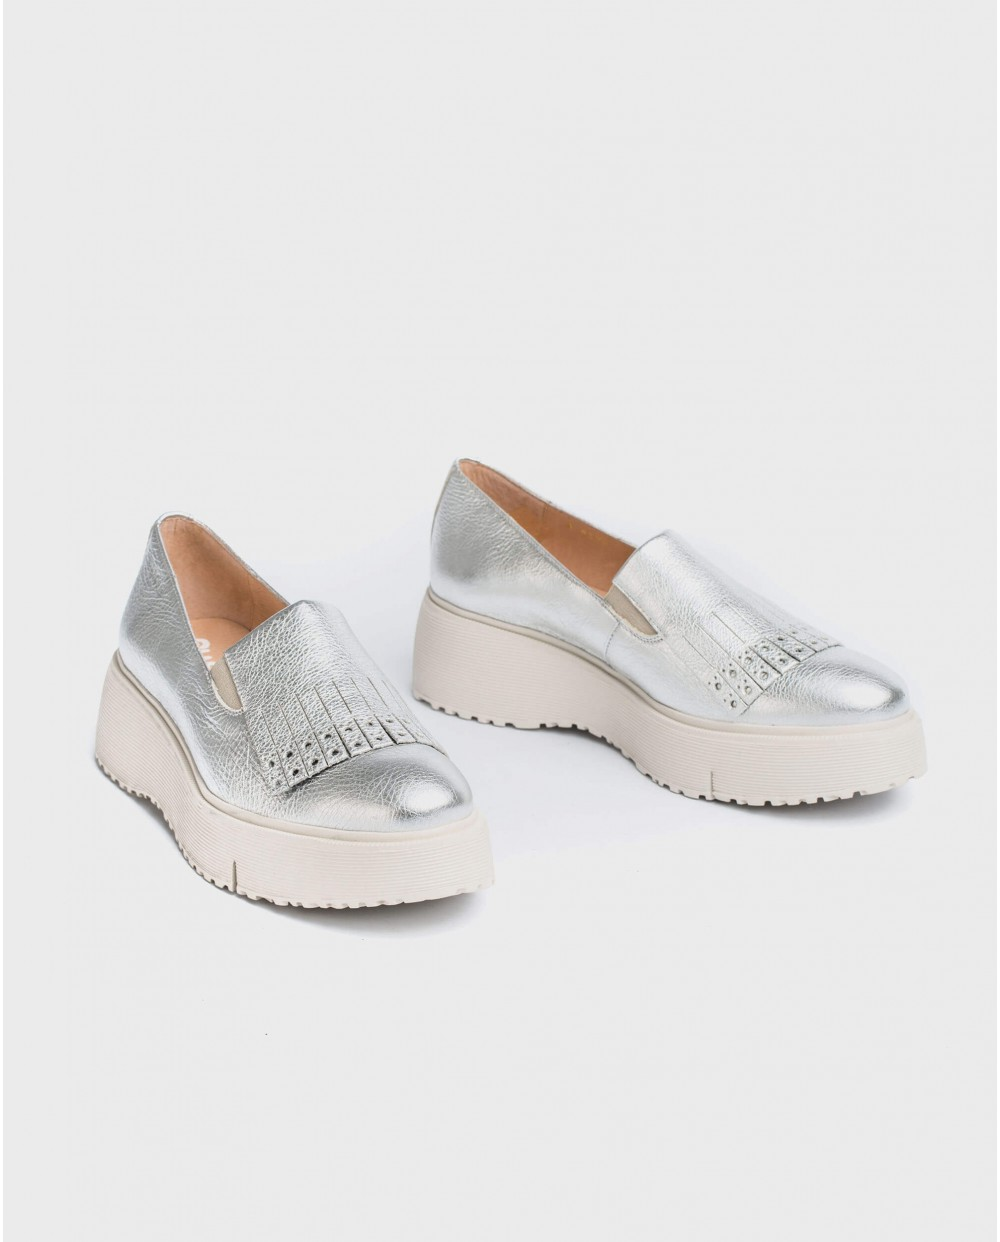 Wonders-Wedges-Metallic leather moccasin with fringe